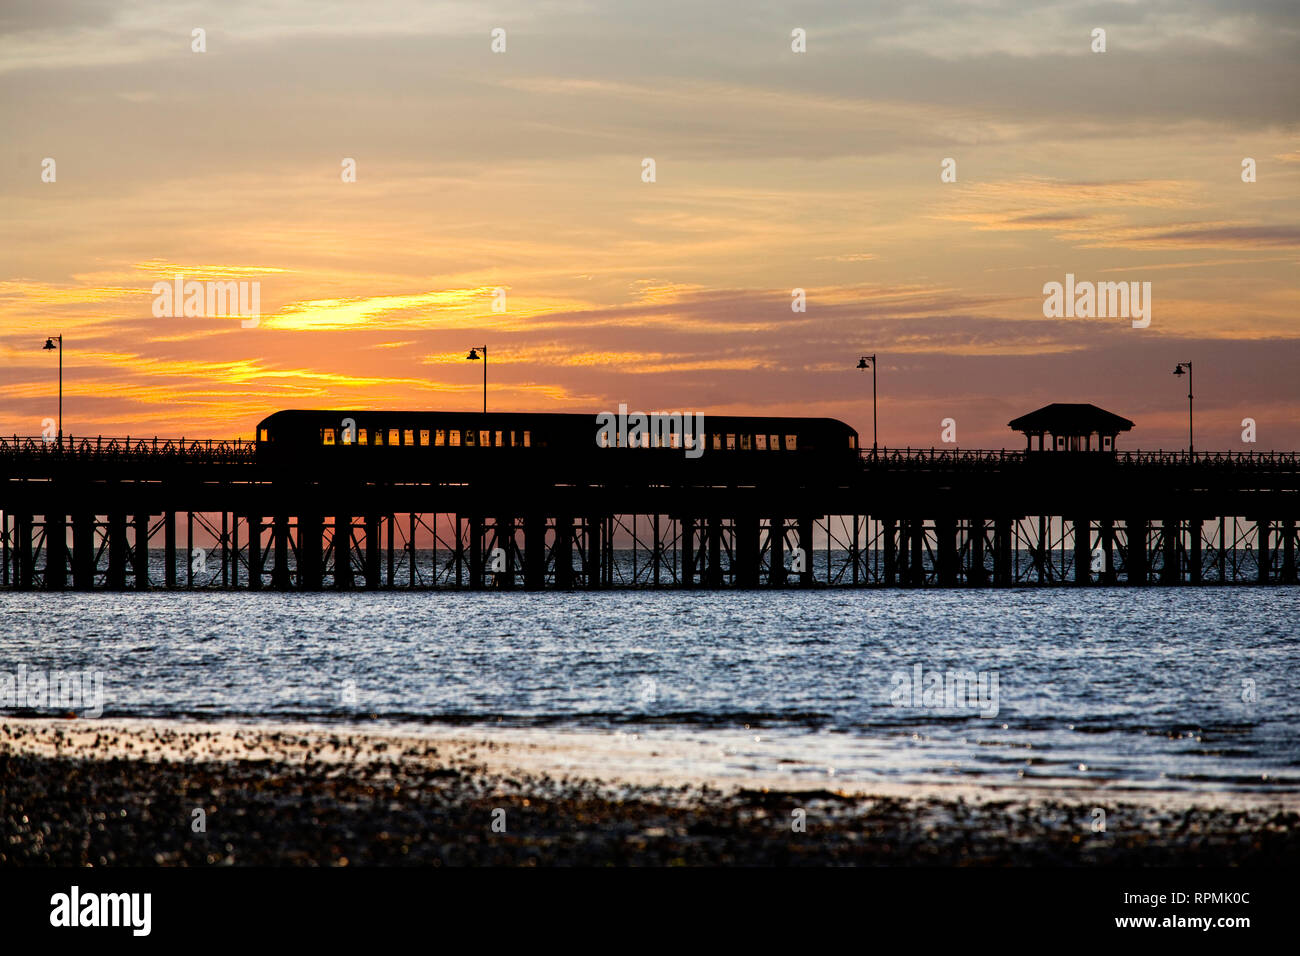 1930s tube train on Ryde Pier in silhouette against sunset, Island Line, railway, Sandown, Shanklin, UK, England, Isle of Wight, Ryde - Stock Image